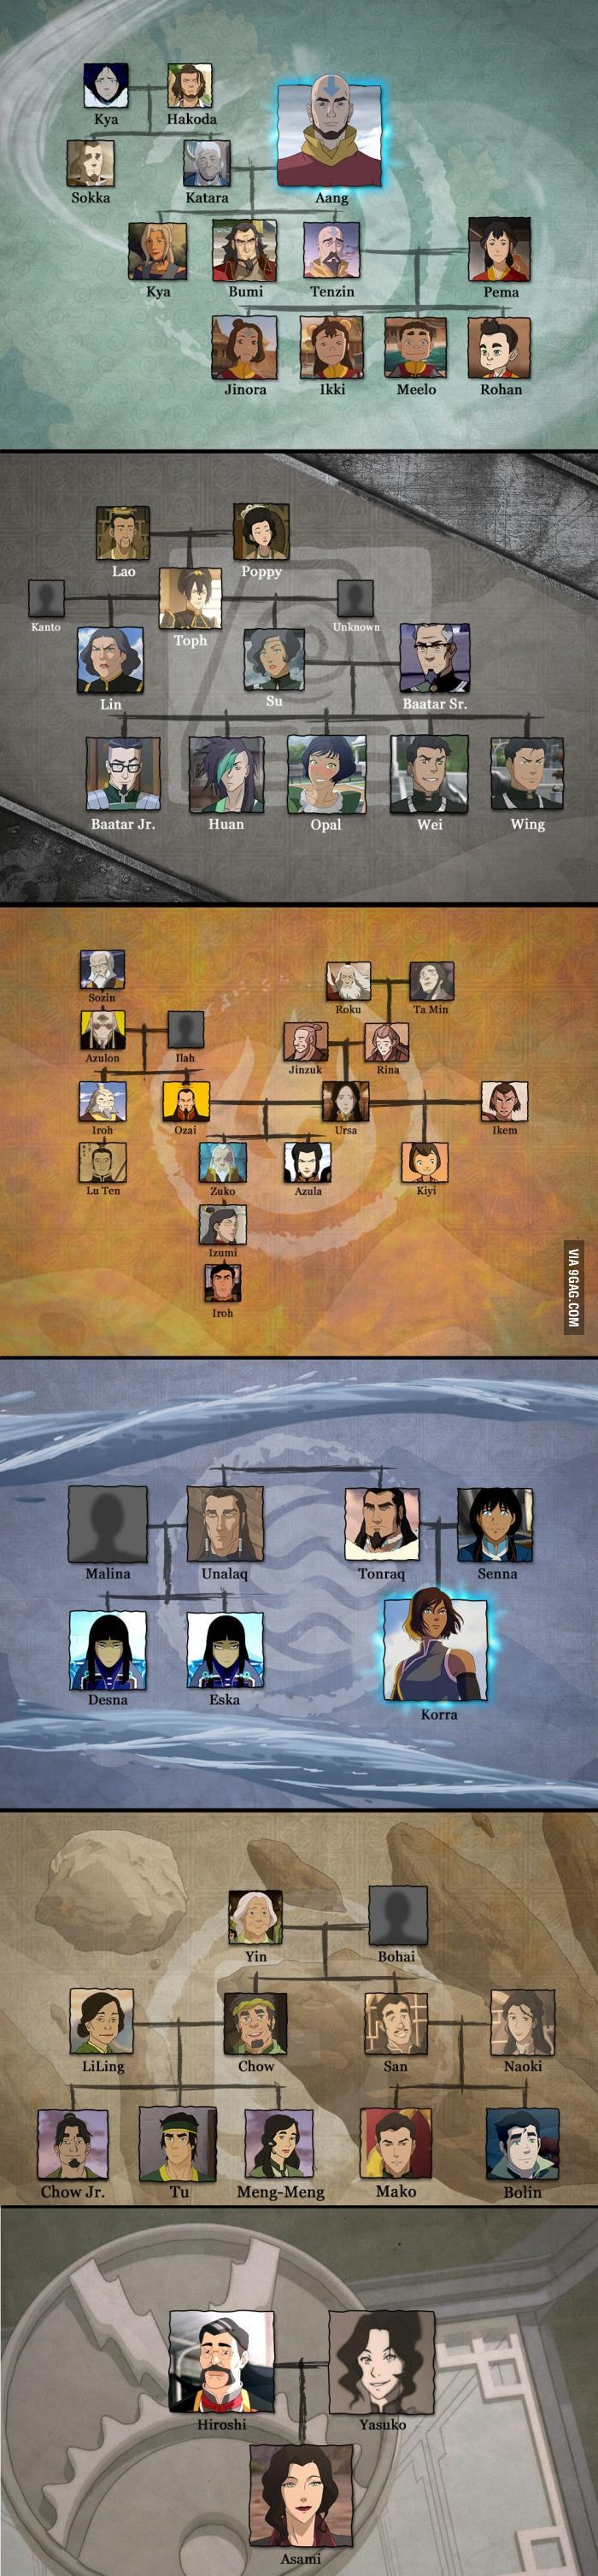 Avatar the Last Airbender family tree